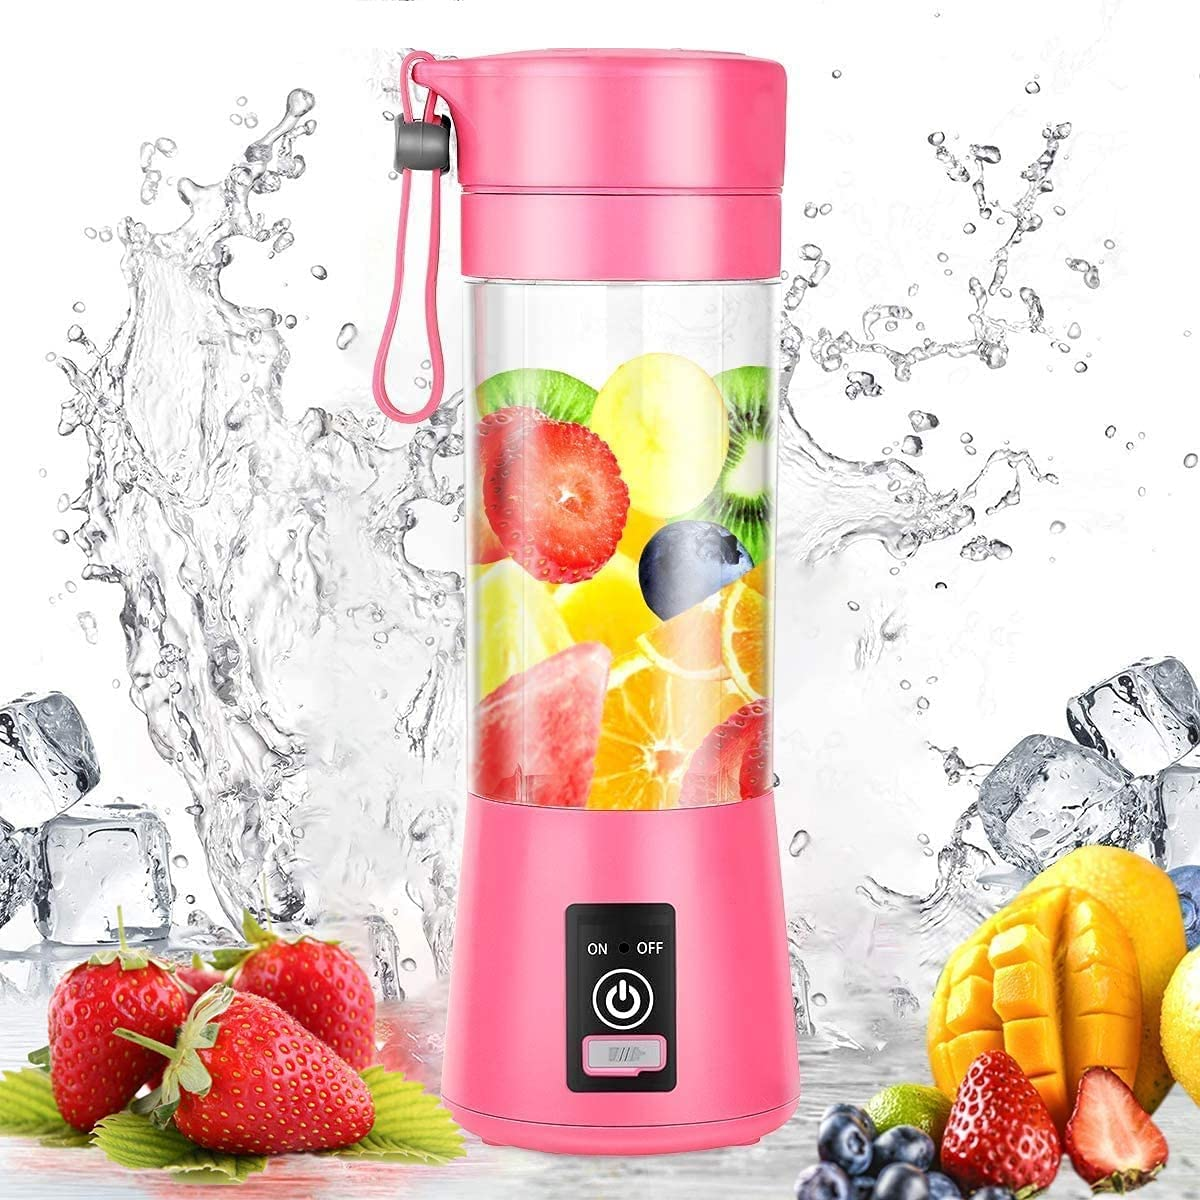 Portable Blender, 13oz Six 3D Juice cup, Personal Mixer Fruit Rechargeable with USB, Mini Blender Shakes And Smoothies Portable Smoothie Blender (Pink Appearance)